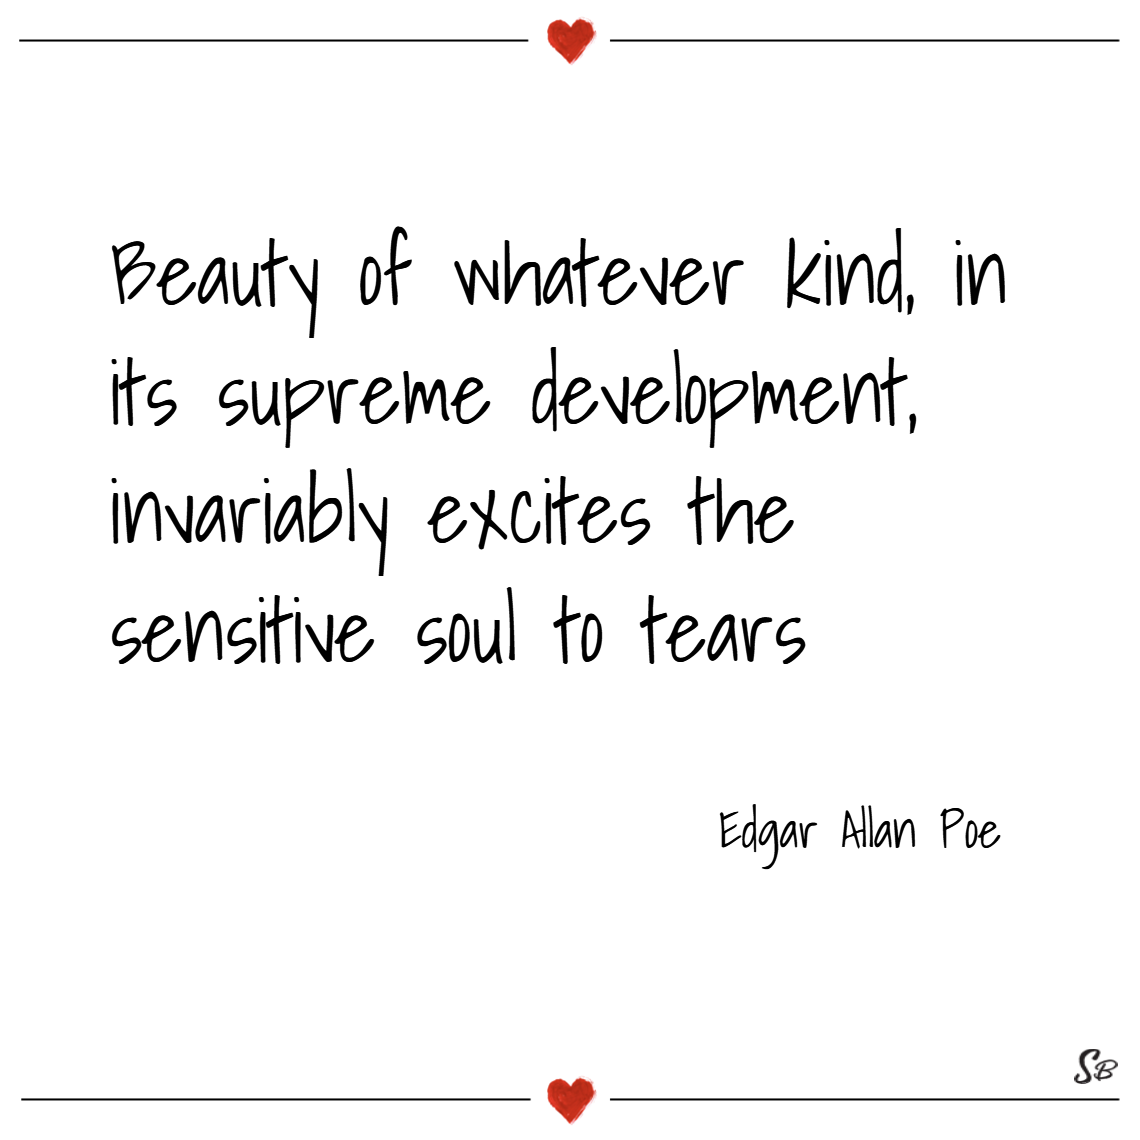 Beauty of whatever kind, in its supreme development, invariably excites the sensitive soul to tears. – edgar allan poe